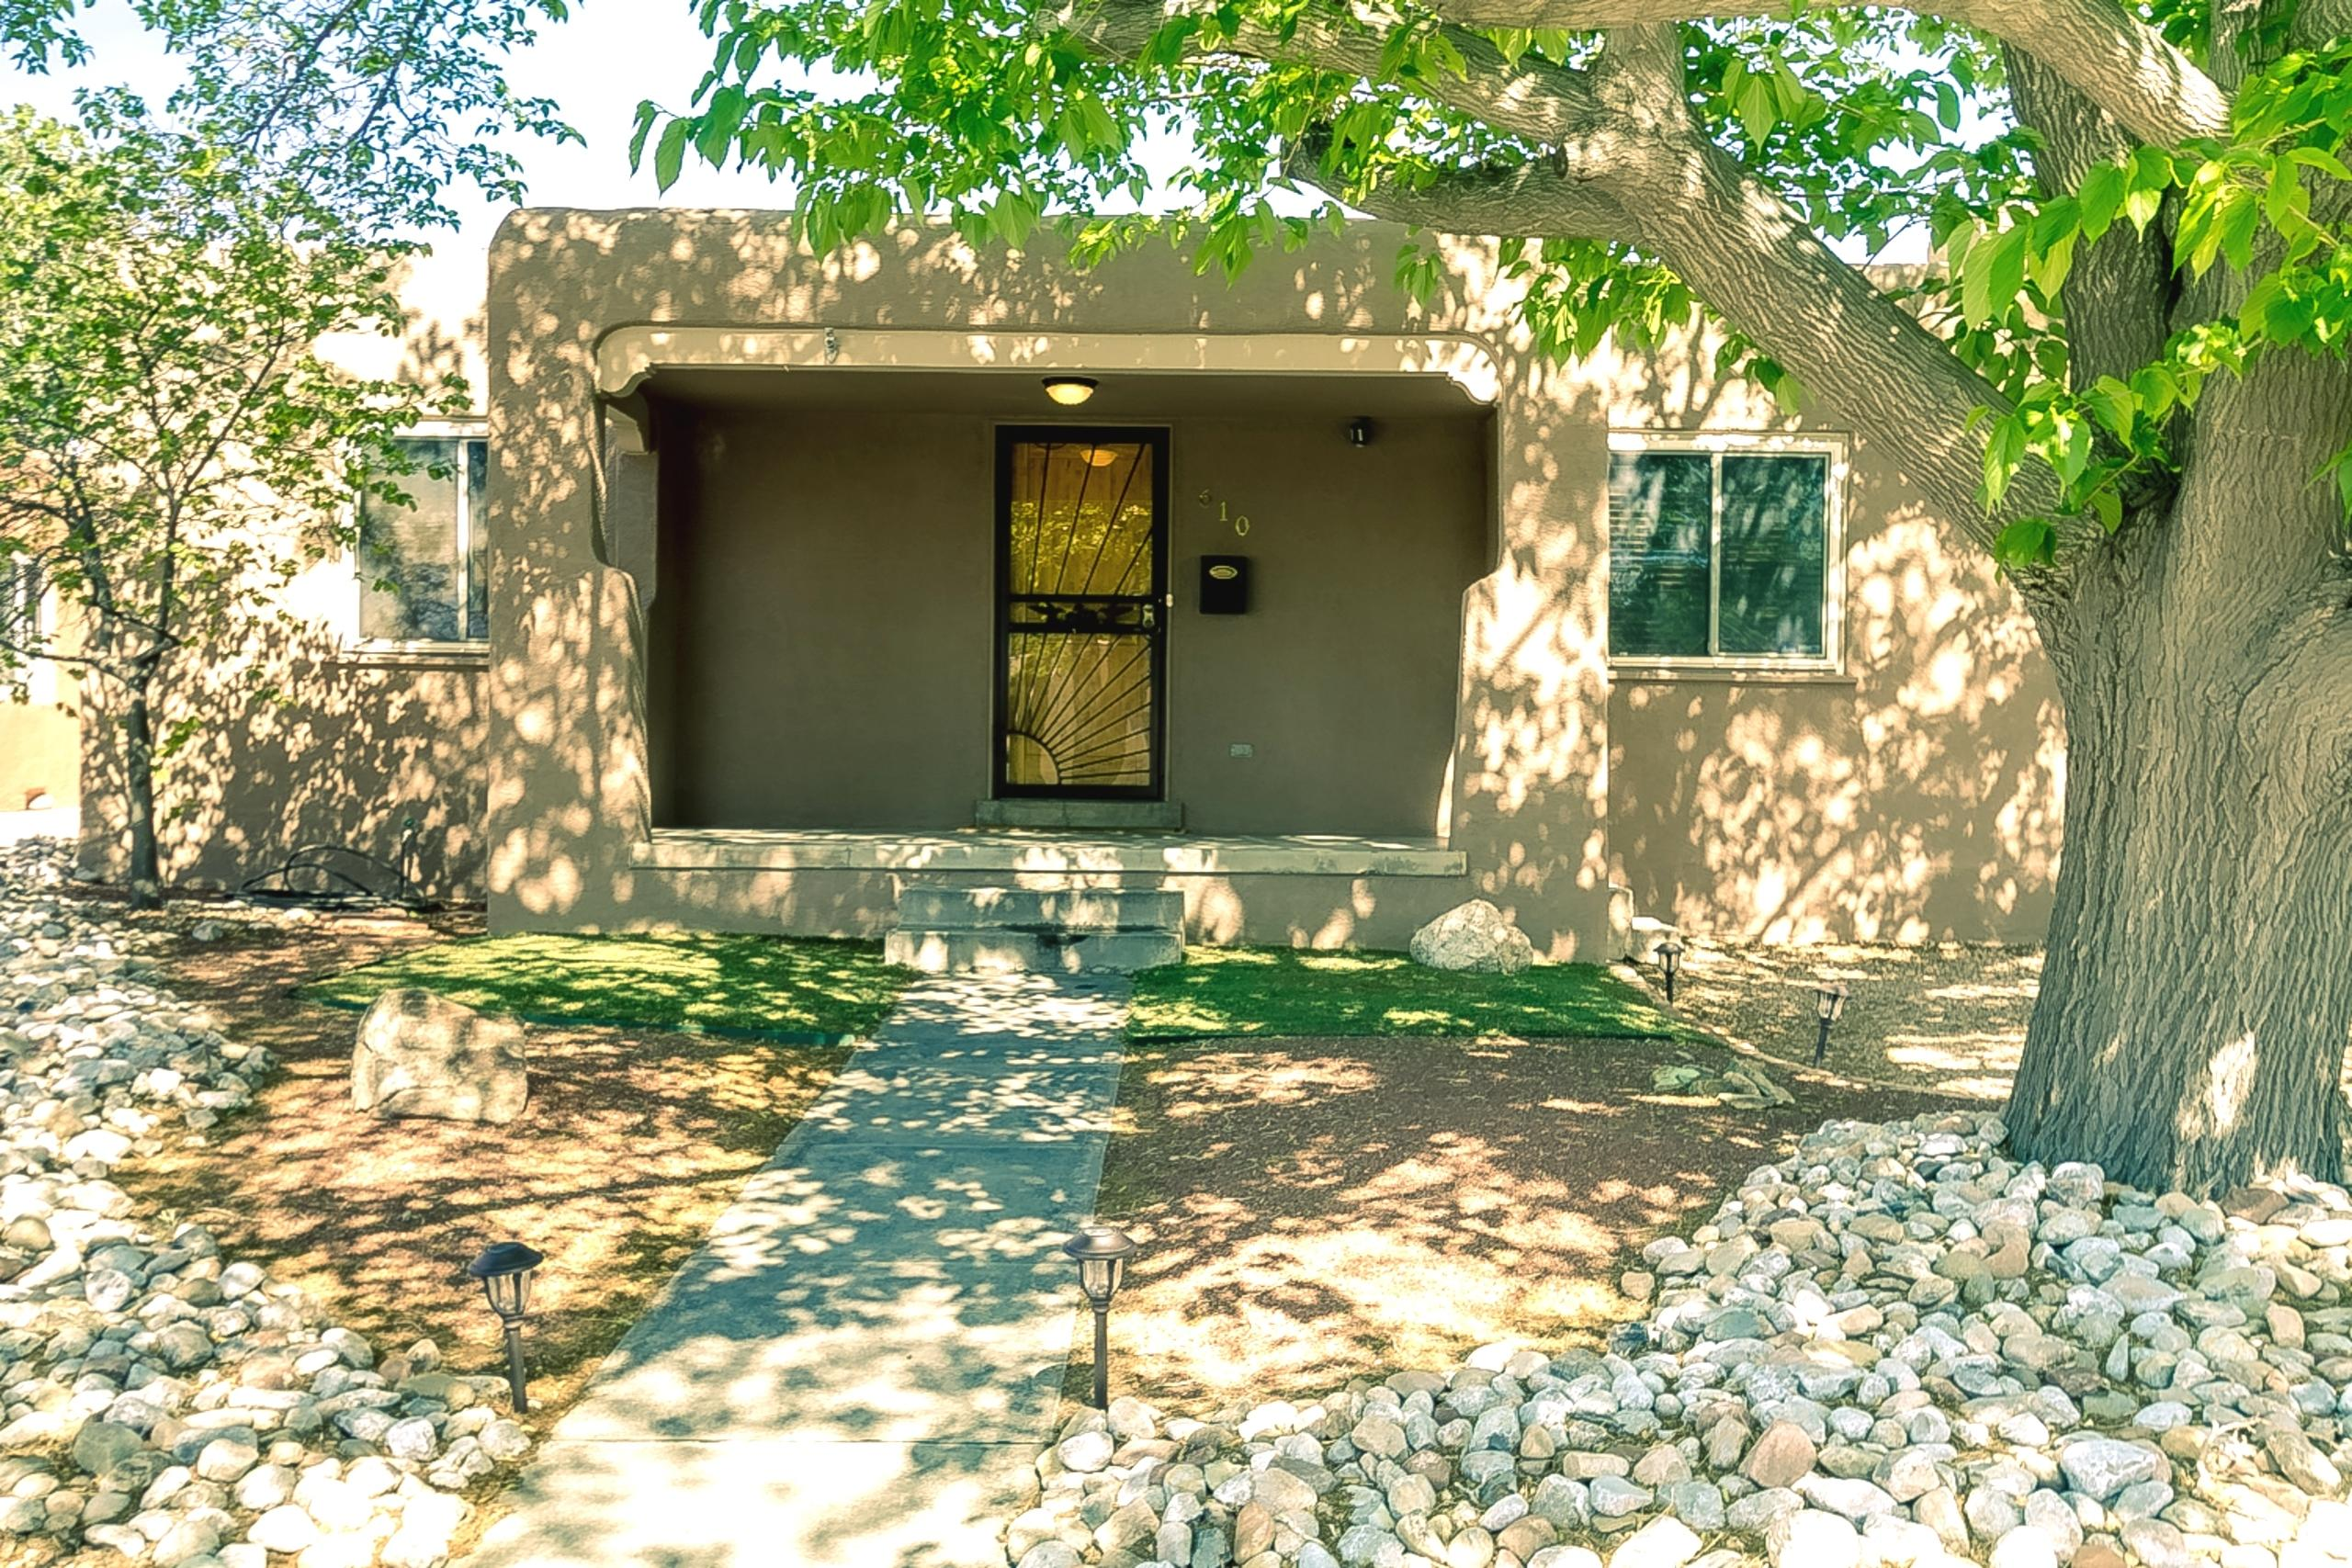 MONTE VISTA/NOB HILL! One level, 4 bedrooms, 1.75 baths and 1 car garage - a beautifully maintained Pueblo-style home close to UNM! Roof new in 2019. Combo HVAC (refrig air) with wrapped insulated ducts new in 2019. Water heater new in 2017. Oak hardwood floors + slate-look tile. Living room with gaslog FP. Open kitchen with maple cabs, granite counters, island with gas cooktop, double electric ovens, garden window, pantry and amazing storage. Dining room/flex room with tiled floor medallion. Separate master suite with walk-in closet + bath with shower and double sink vanity. Two sets of French doors open to oversized private backyard with deck, patio, forever lawn and Tuff Shed. One car garage with separate locking storage room. Extremely popular location!